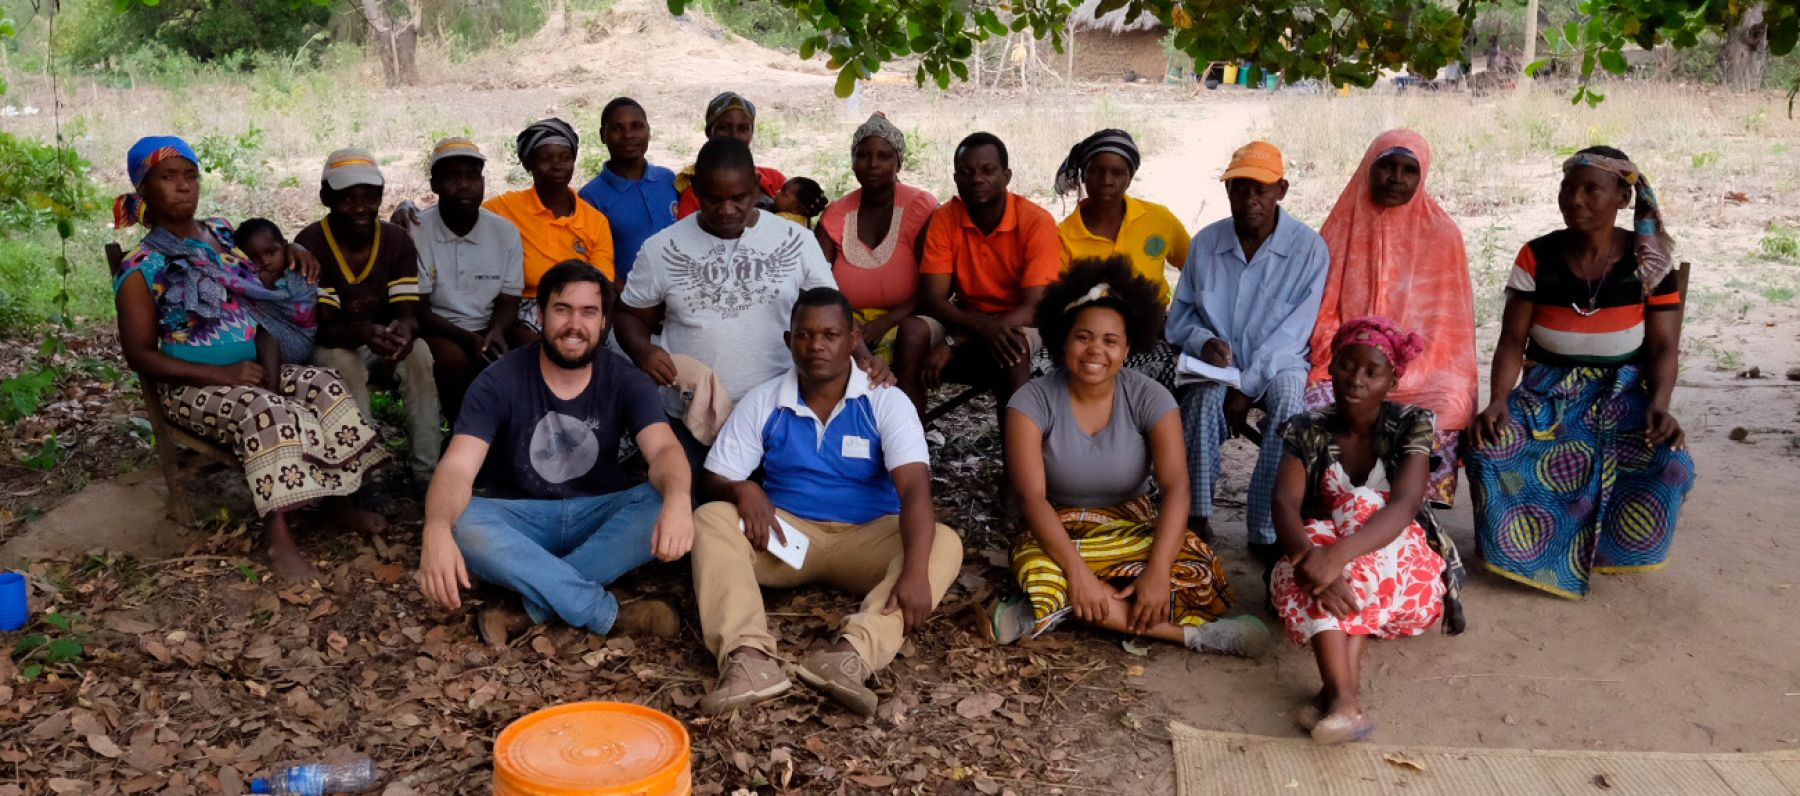 Eliot Duffy from ThinkPlace with the local community in Africa